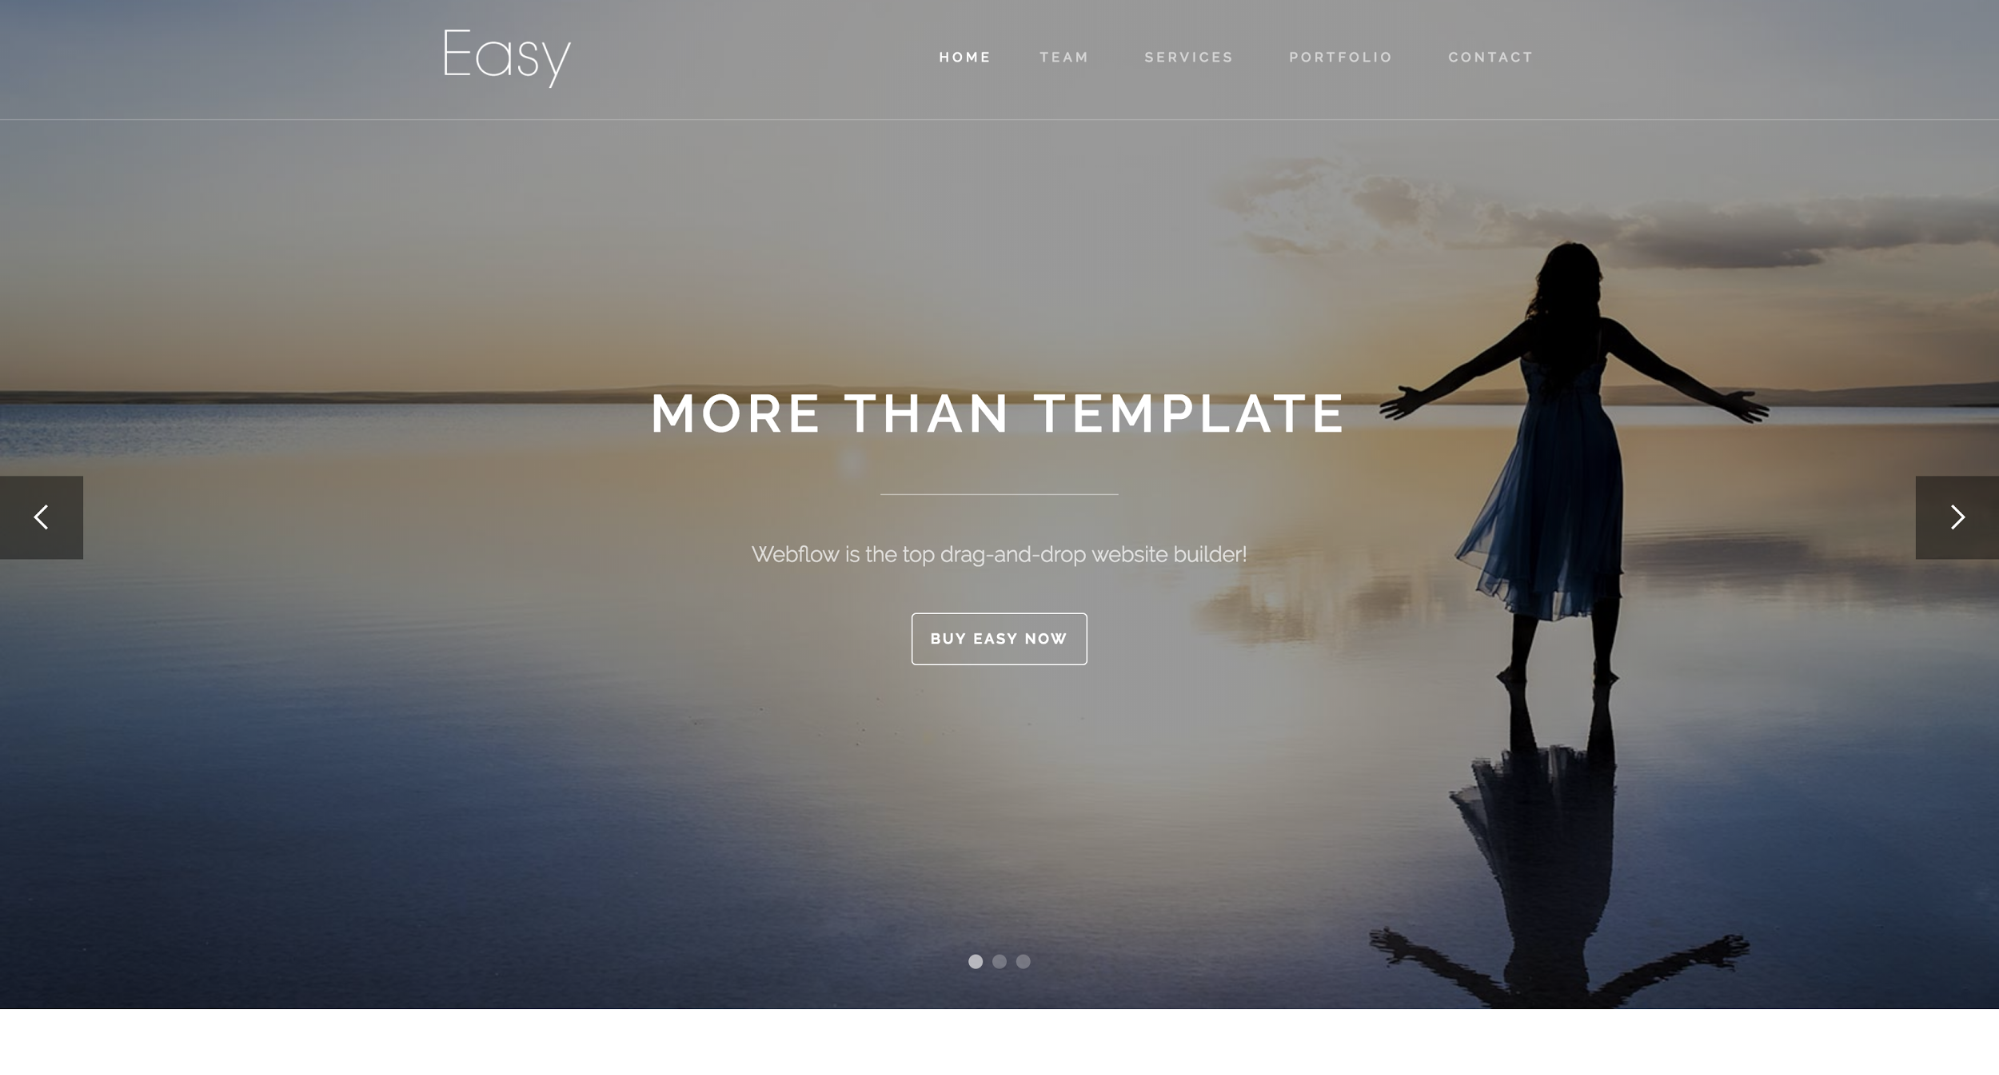 Homepage for Webflow template called Easy.